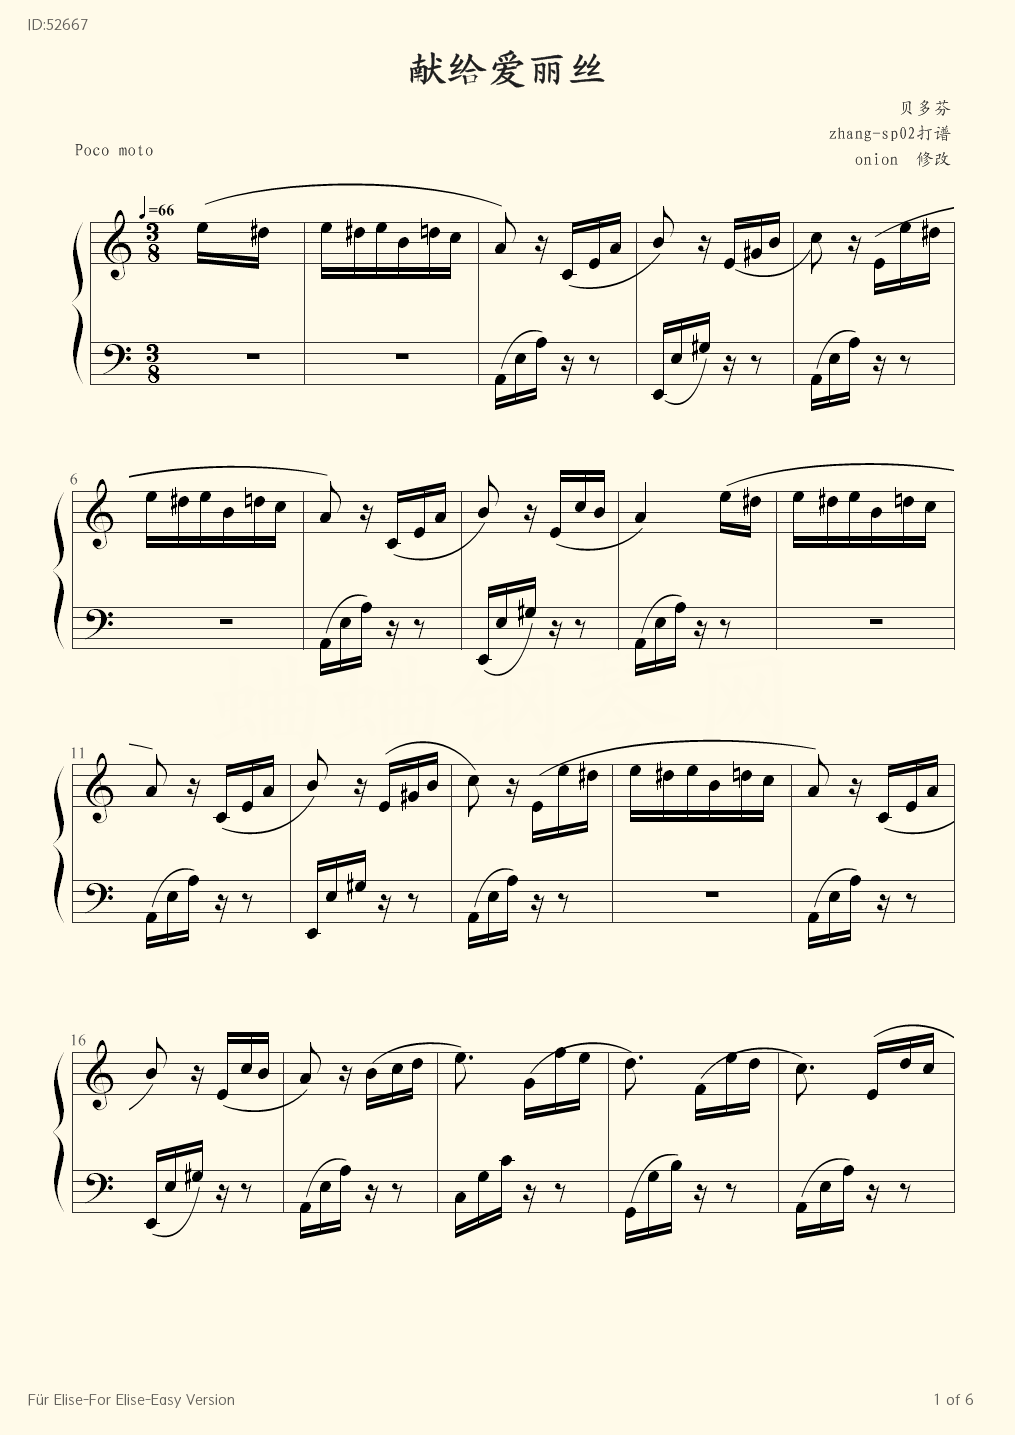 F r Elise For Elise Easy Version - Ludwig van Beethoven - first page